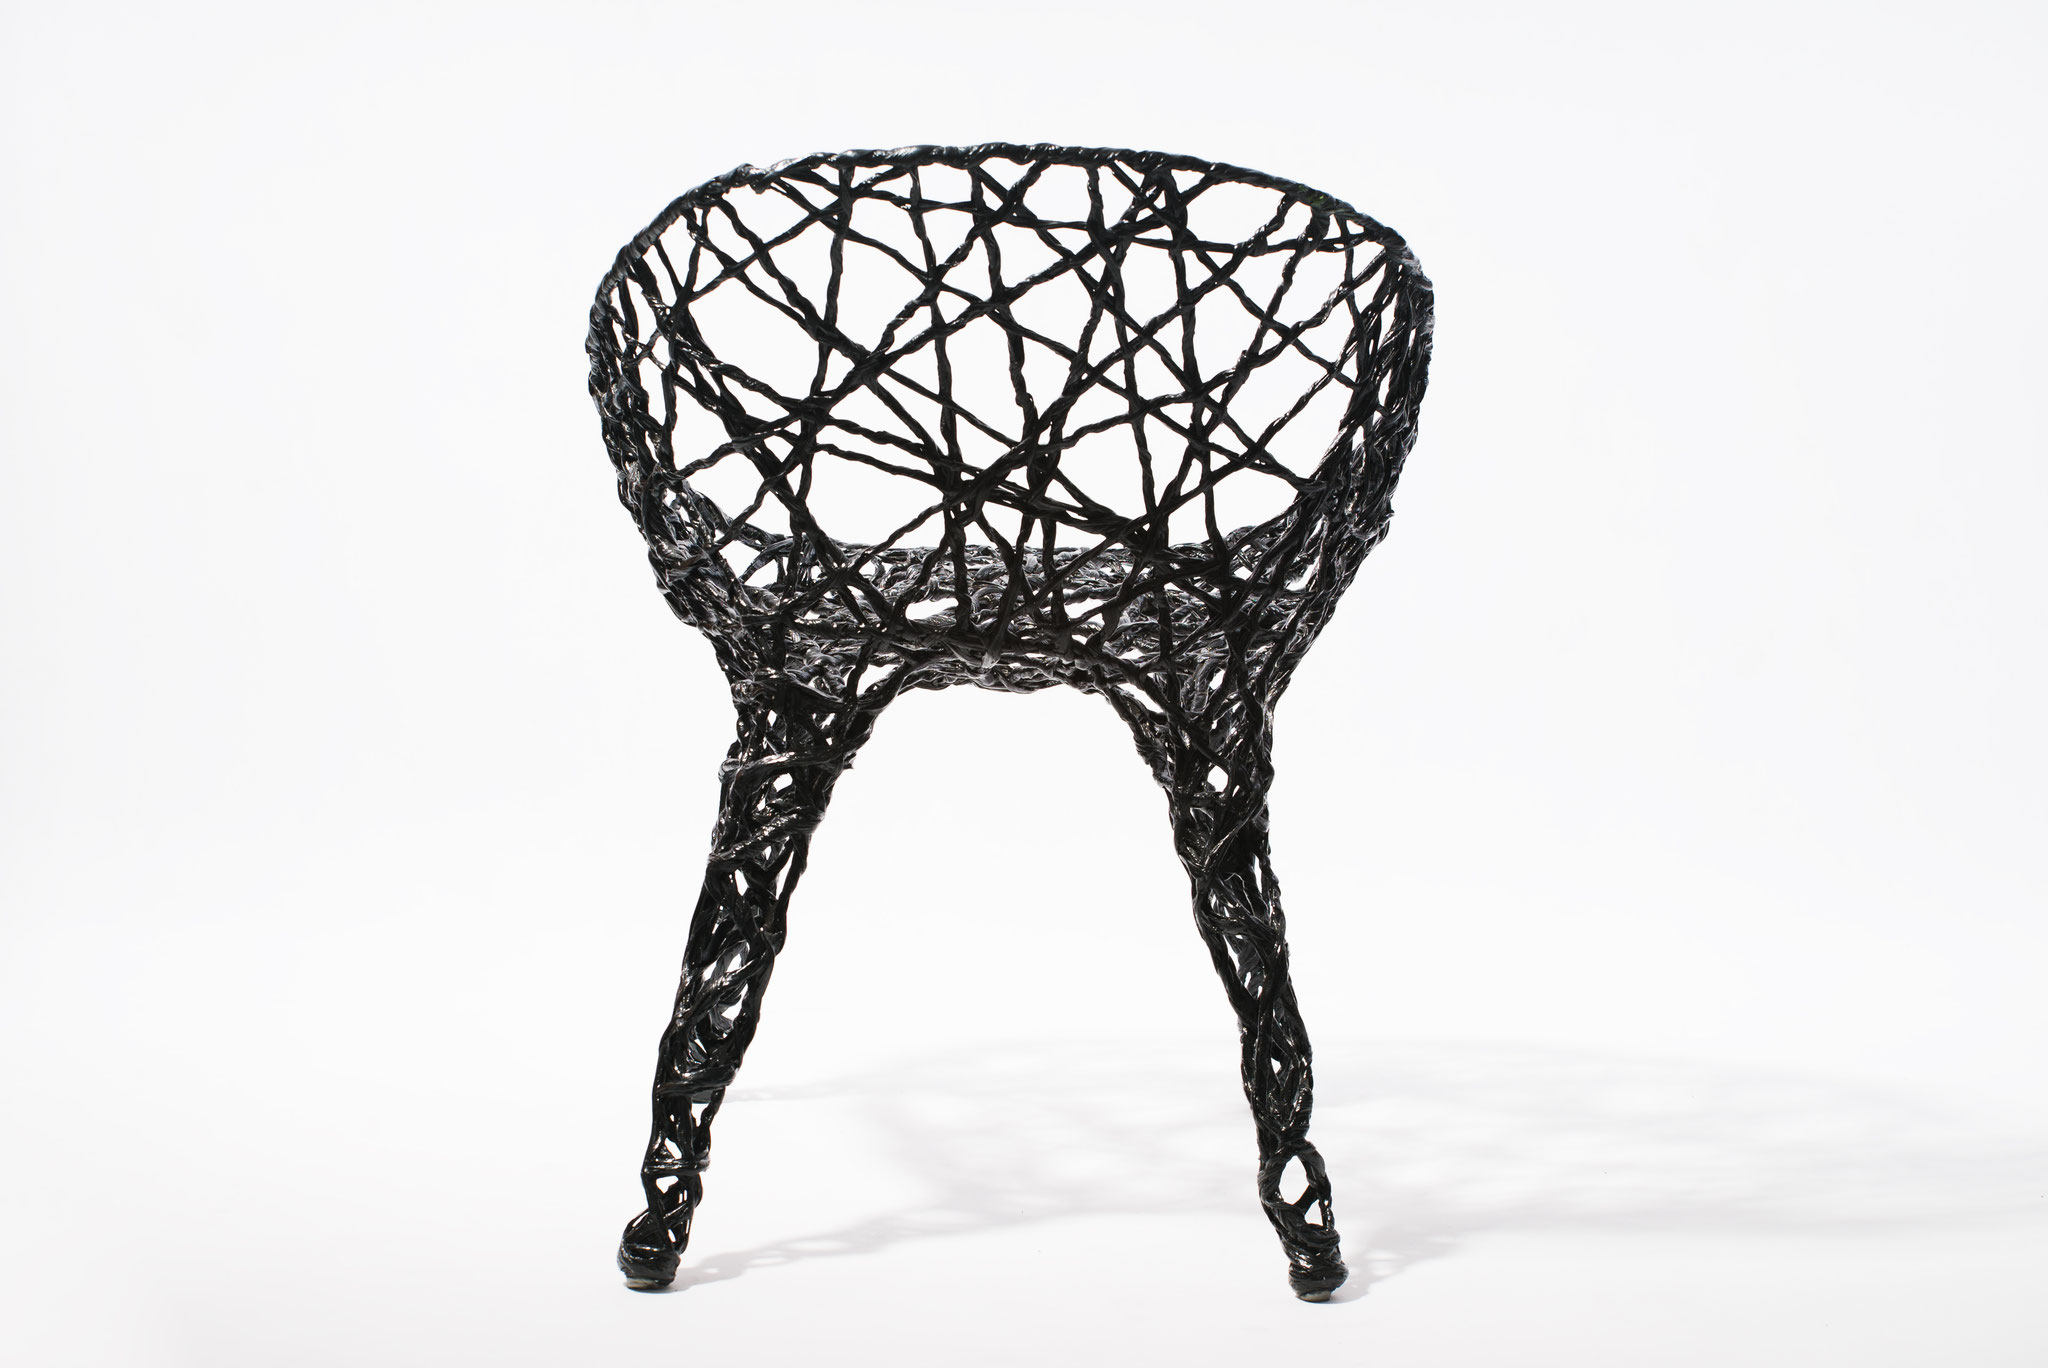 Constructive expressionism chair, made out of carbon fibre and epoxy resin, H: 78cm, W: 53cm, L: 64cm